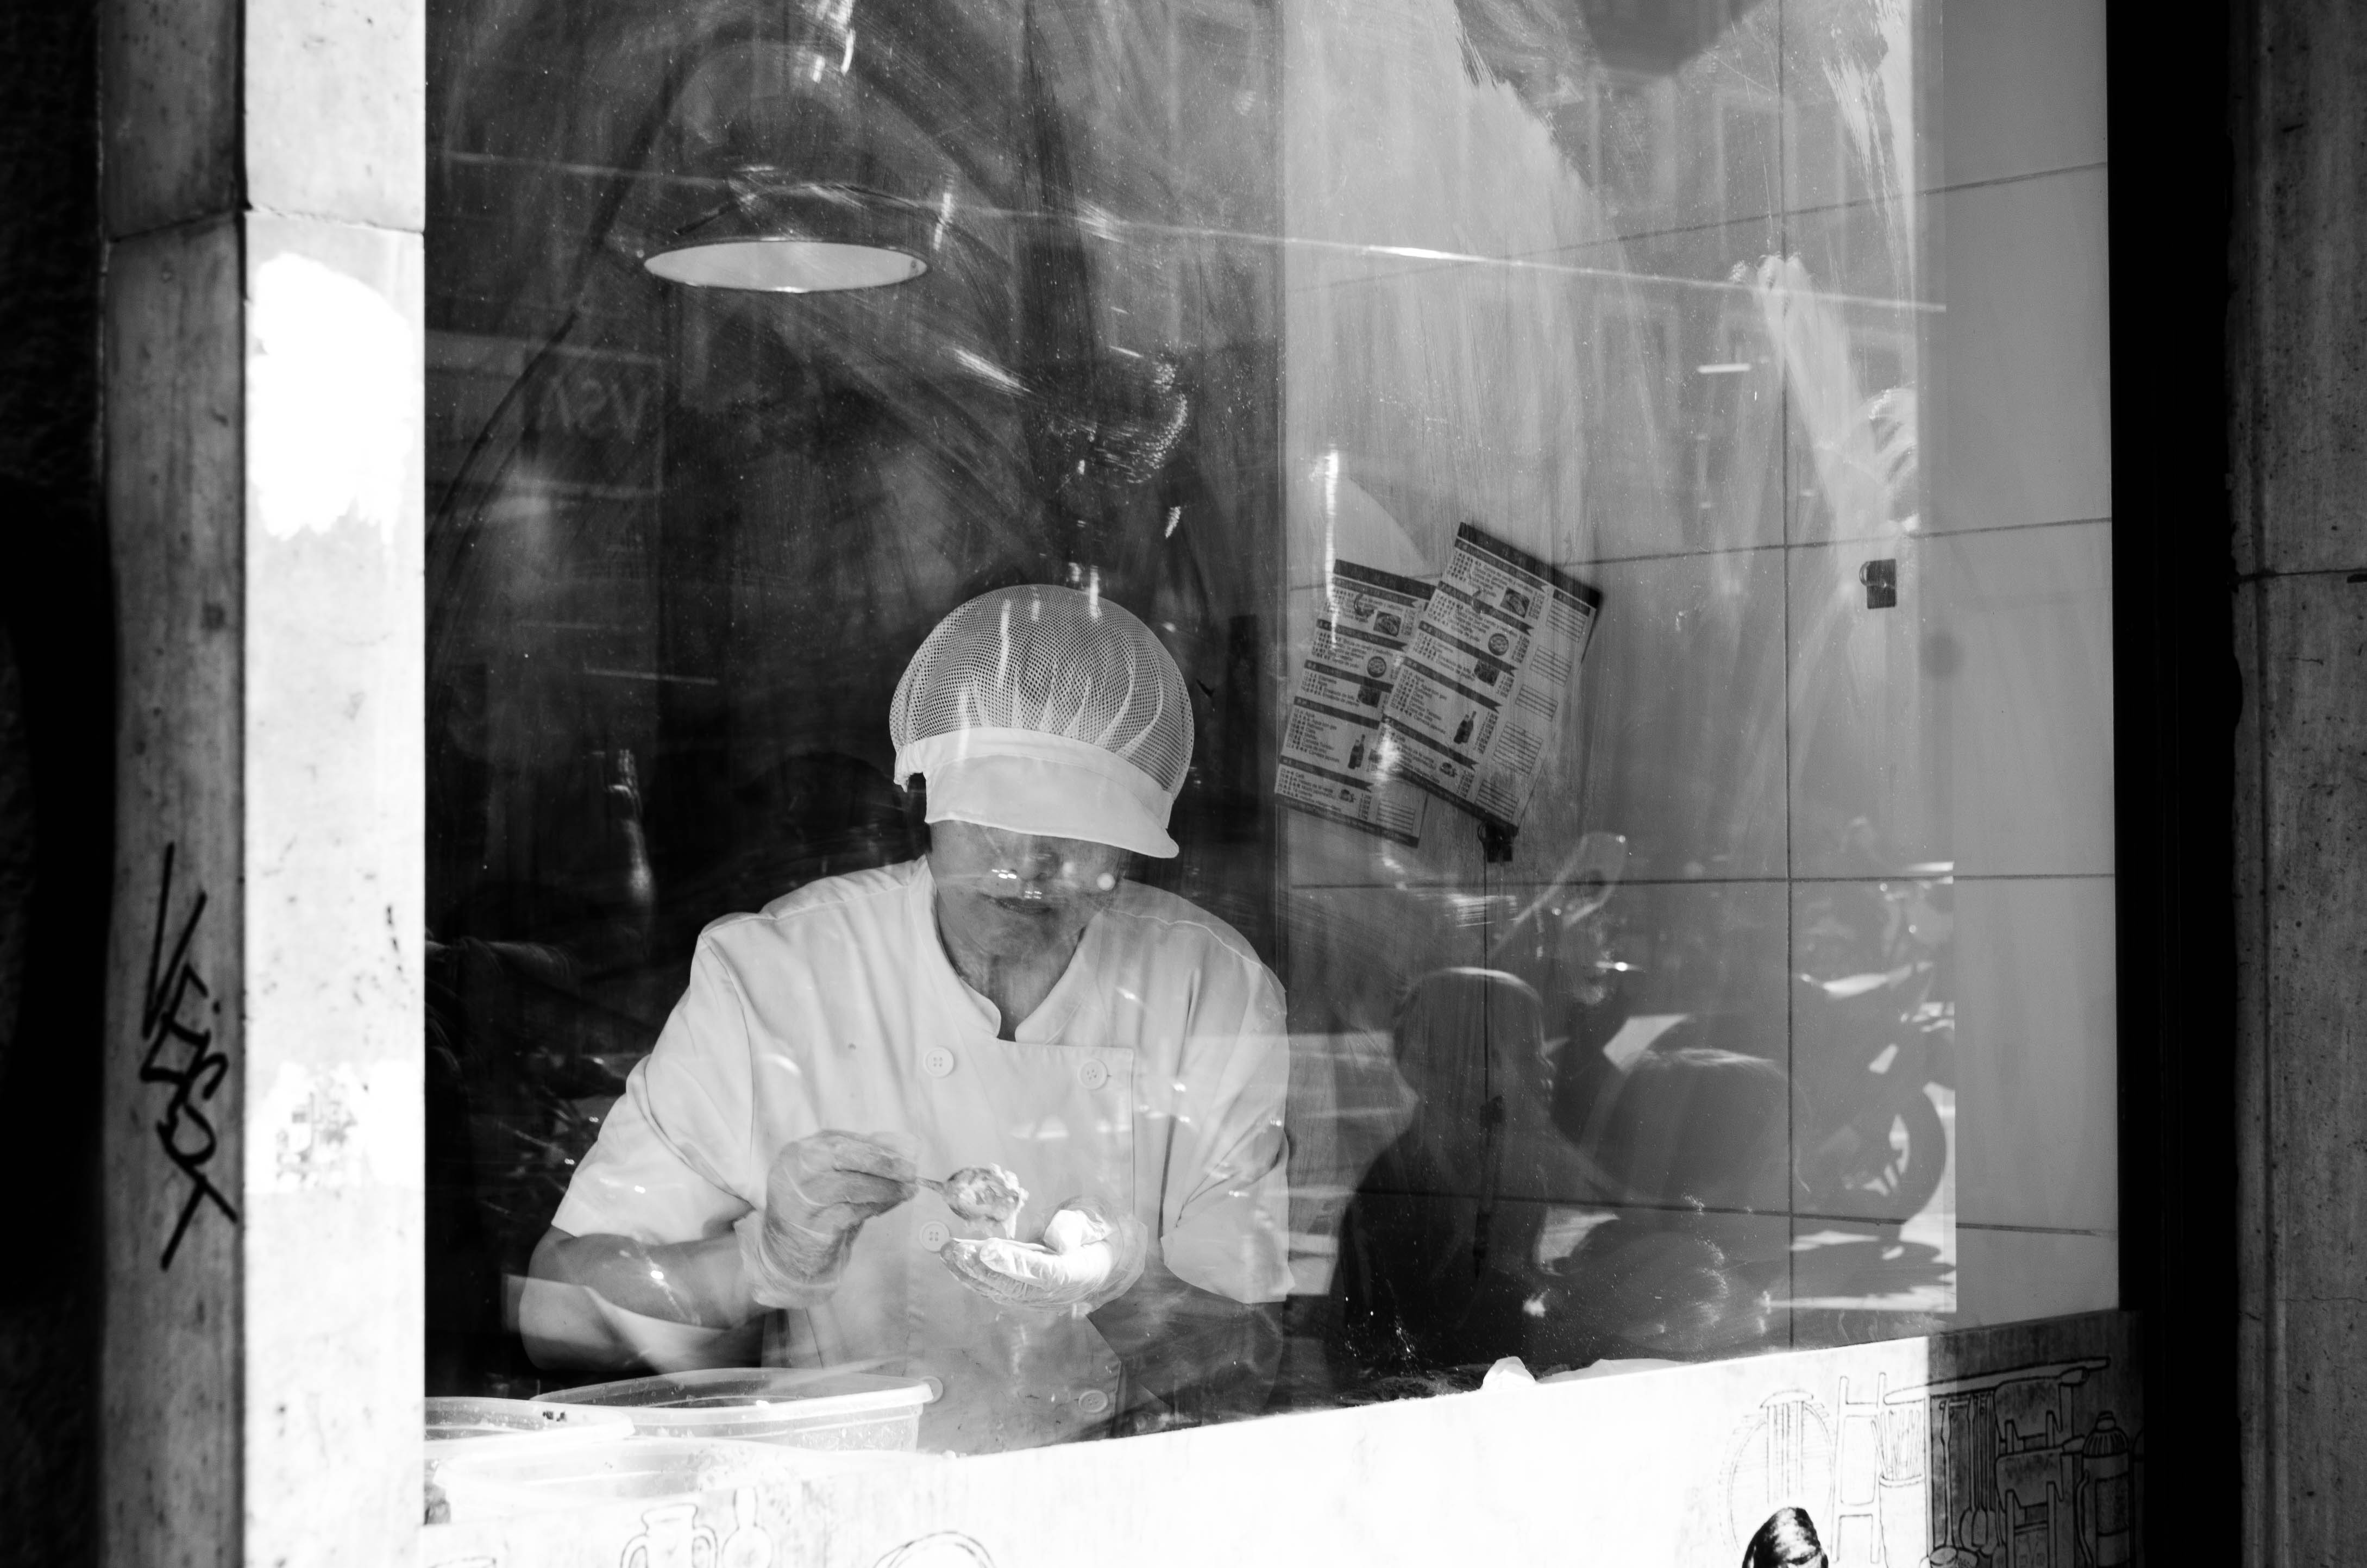 grayscale photography of person working inside room